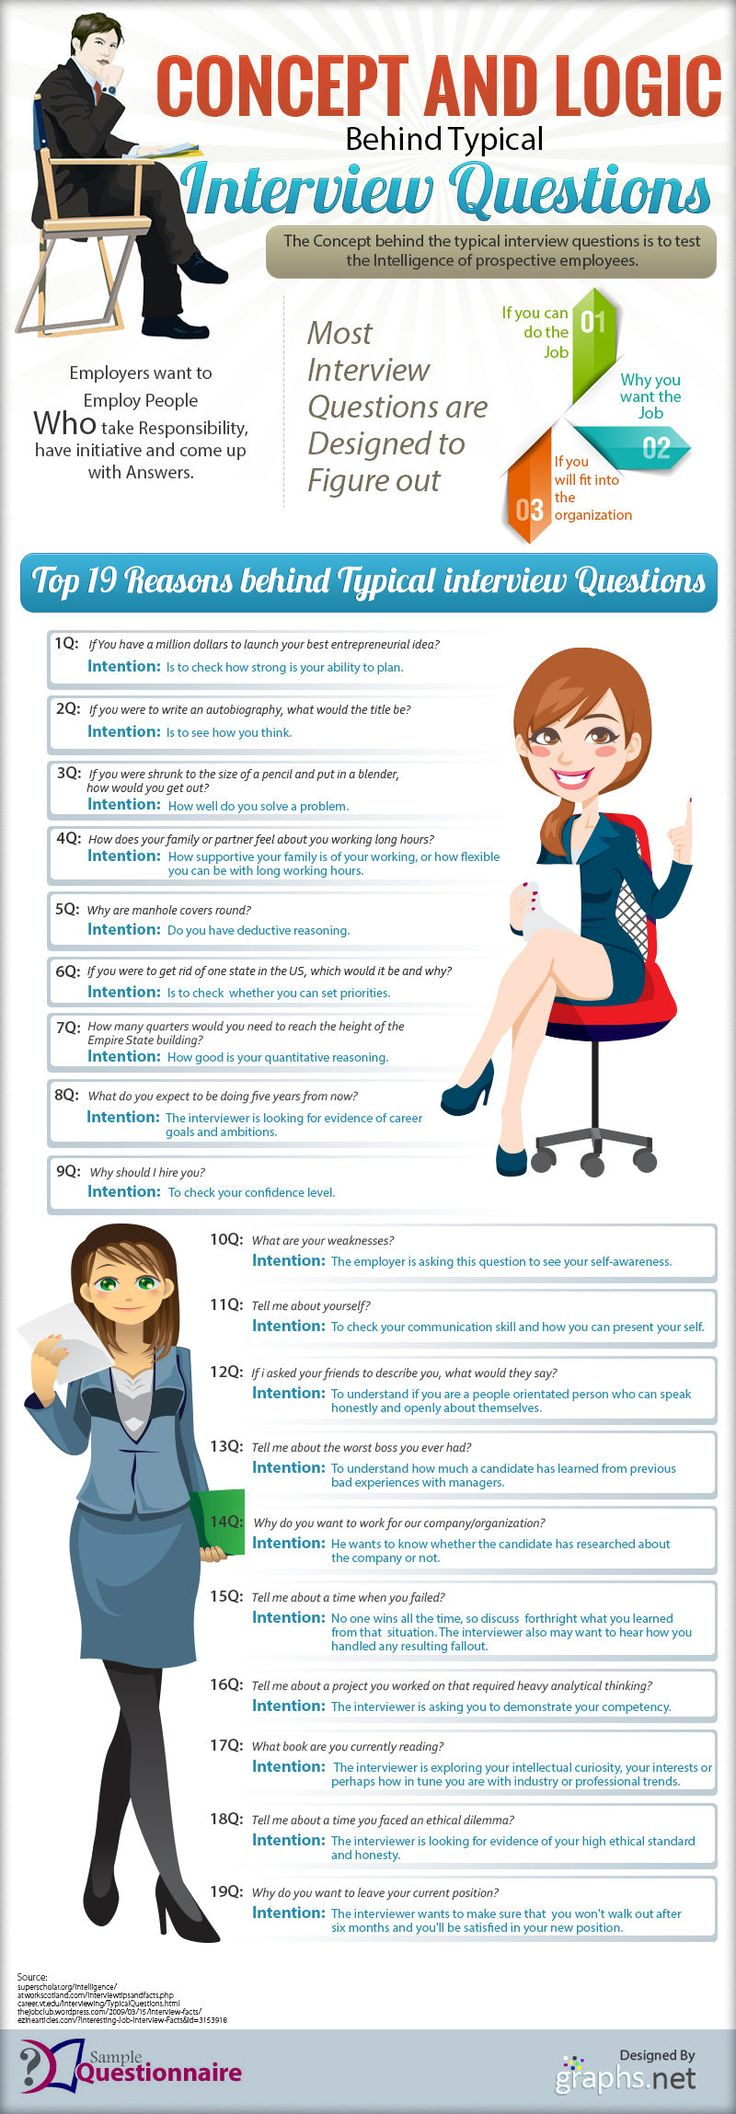 best ideas about typical interview questions job the logic behind 19 common interview questions